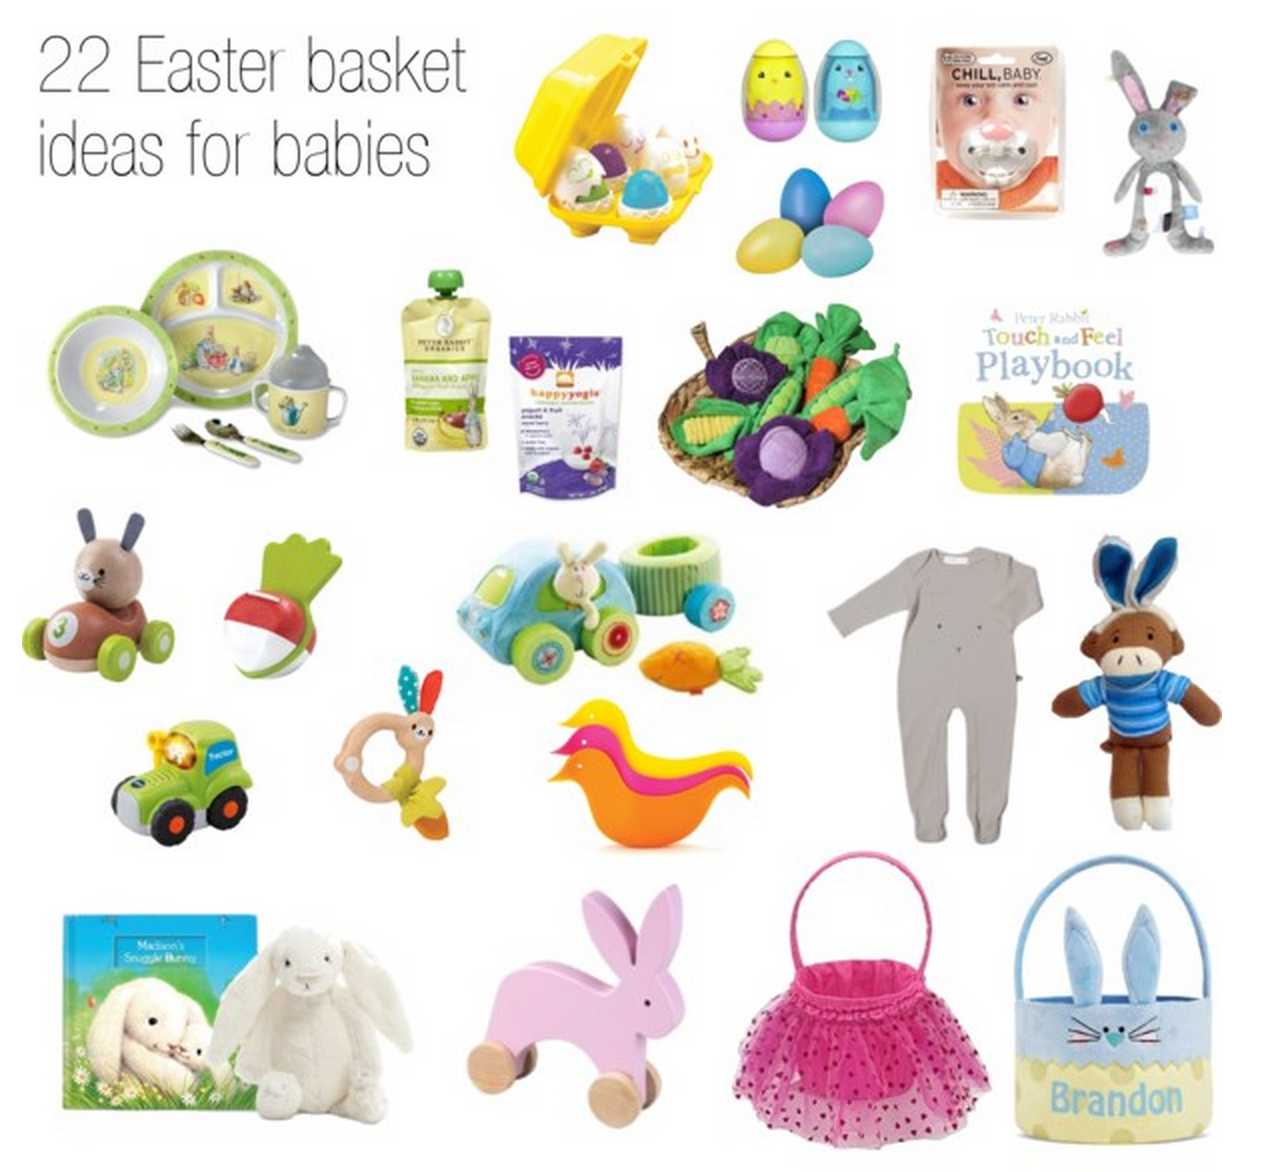 22 adorable easter basket ideas for babies easter gifts for baby negle Choice Image